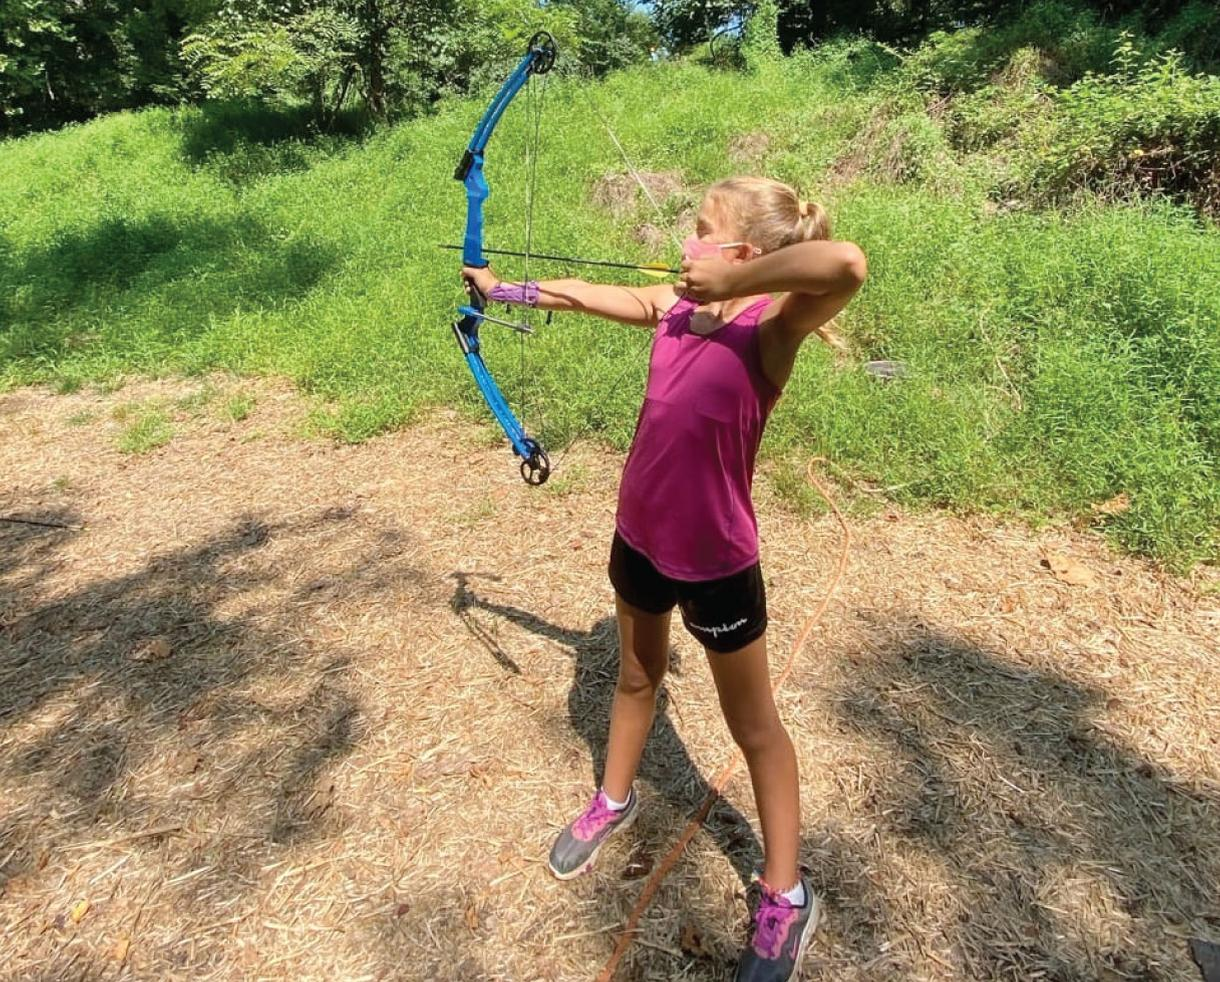 Up to 45% Off Terrapin Adventures - Aerial Ropes, Zip Line, Archery, River Tubing & More!